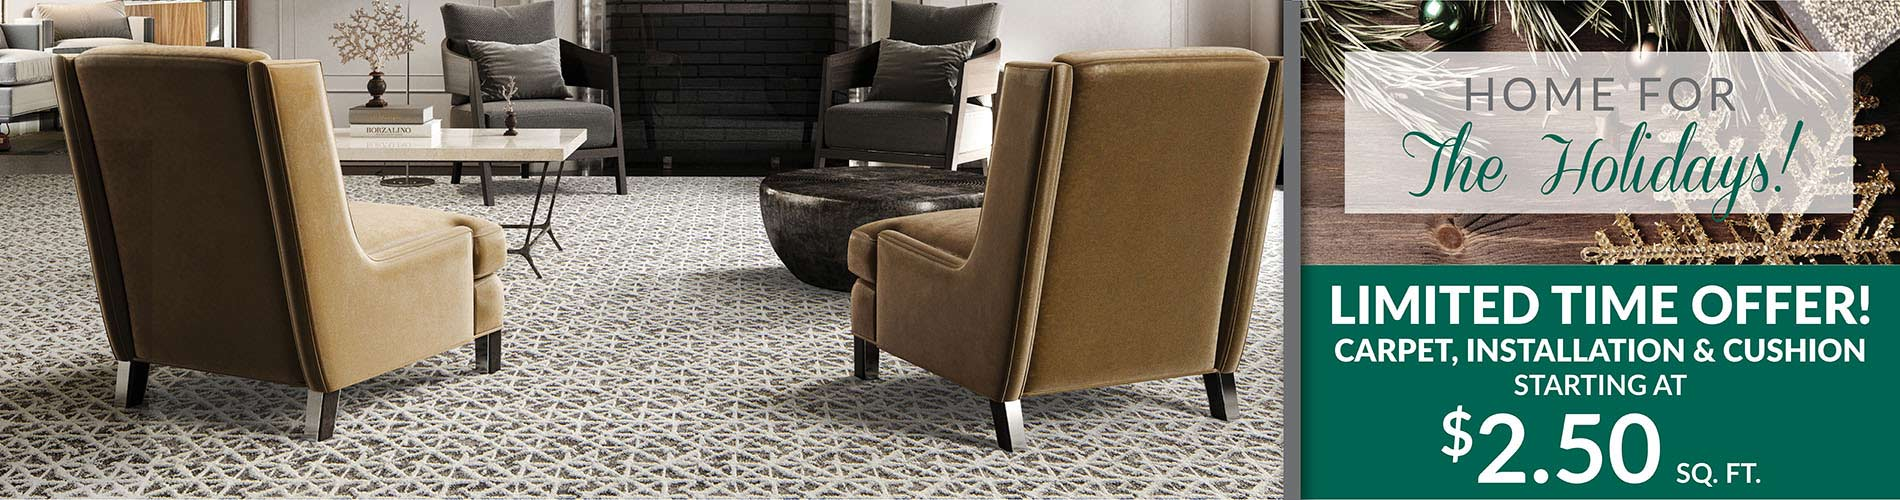 Limited Time Offer! Carpet, Installation & Cushion  Starting at $2.50 sq.ft.